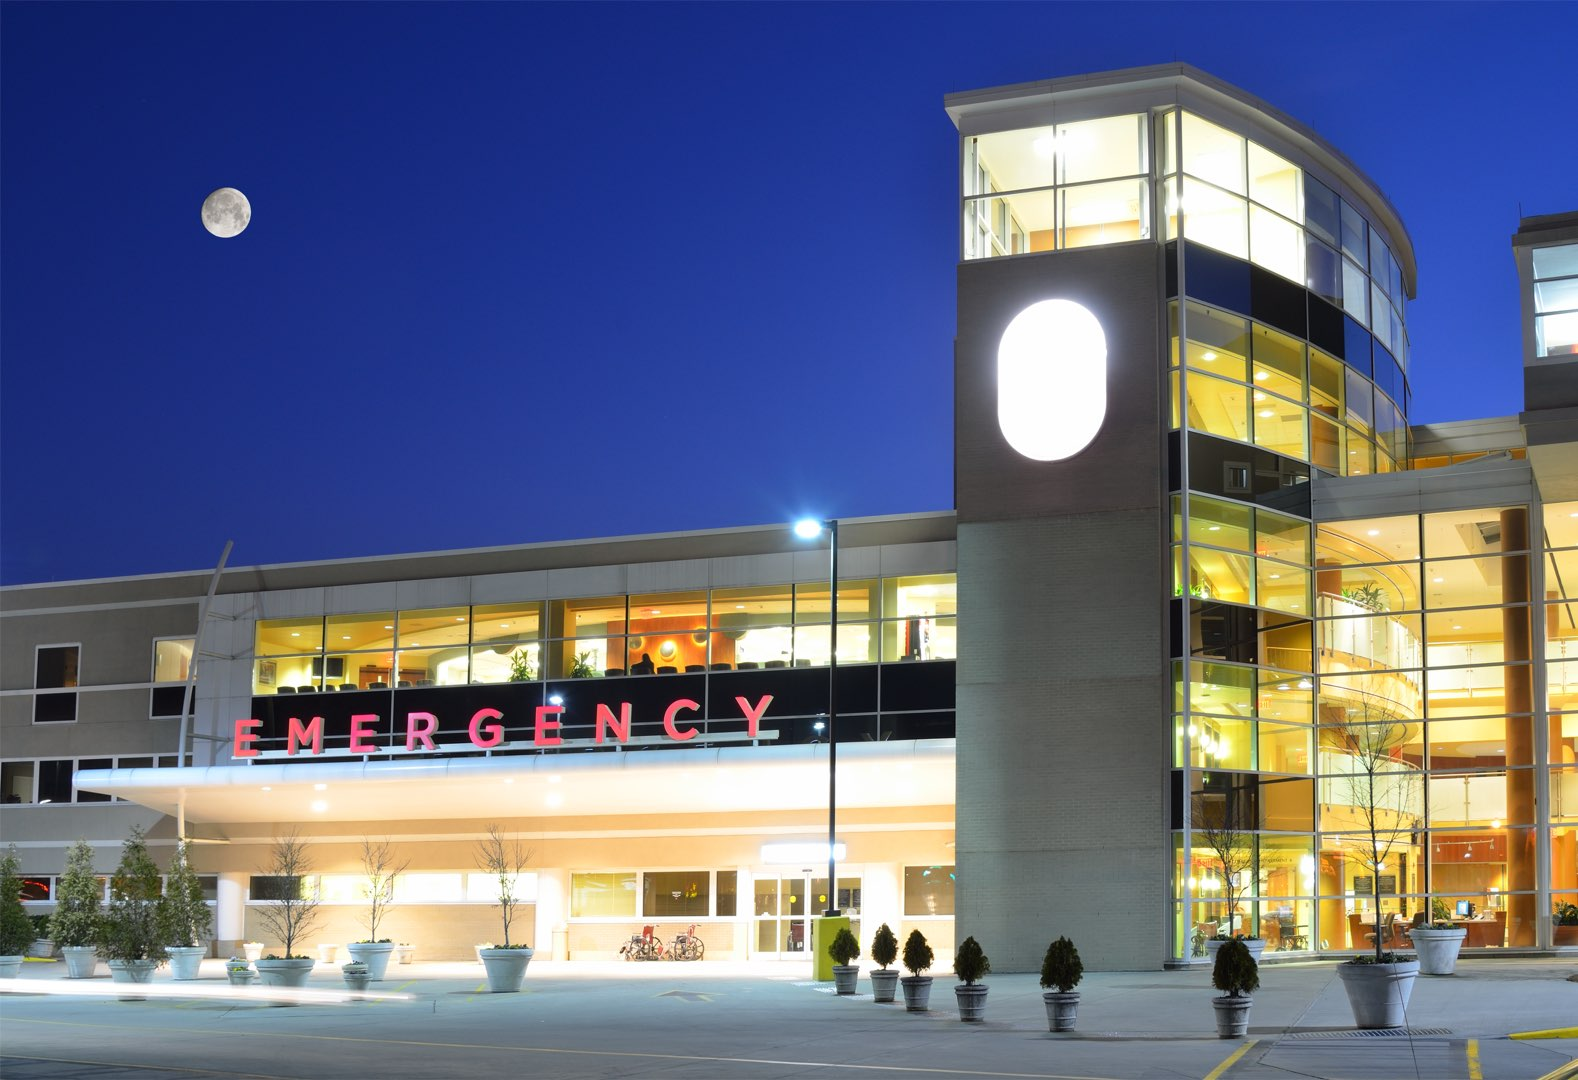 An emergency room exterior at night in the moonlight. Rain or shine, night or day, Progressive is here to help get your healthcare facility in tip-top shape but we need to fill these Grand Rapids building services jobs first!